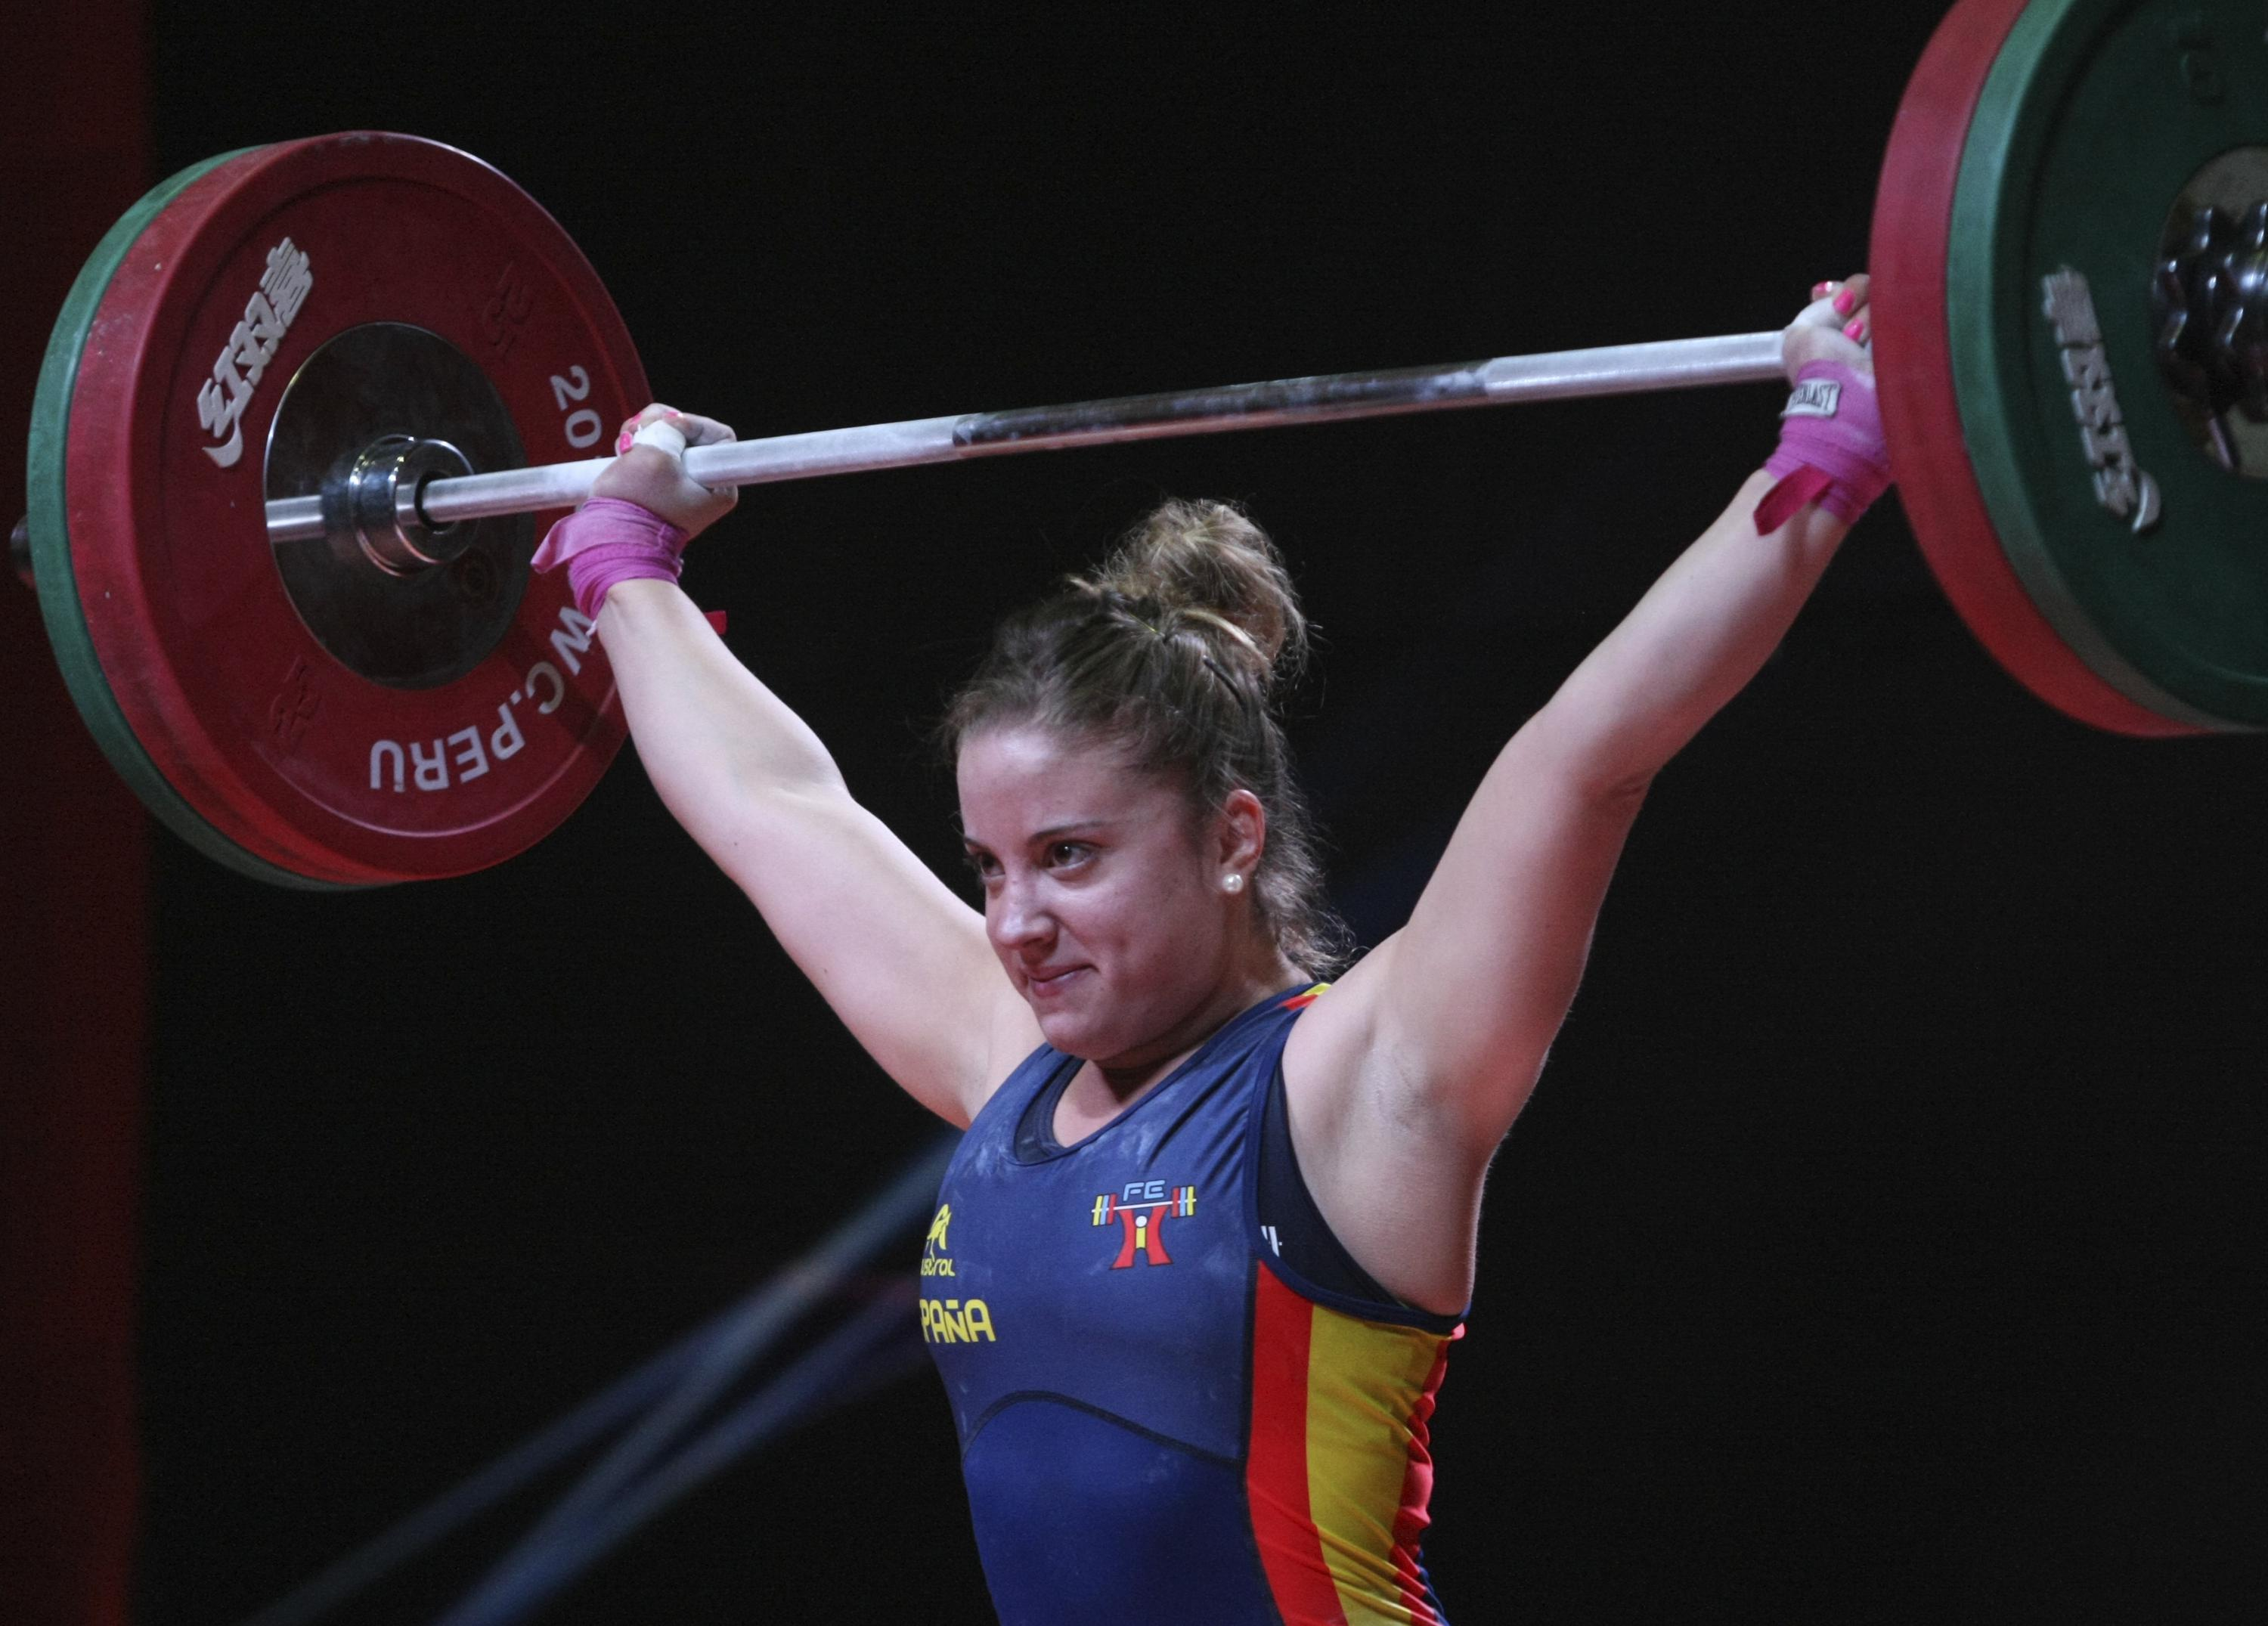 Junior Weightlifting World Championship 2013 - Day Four